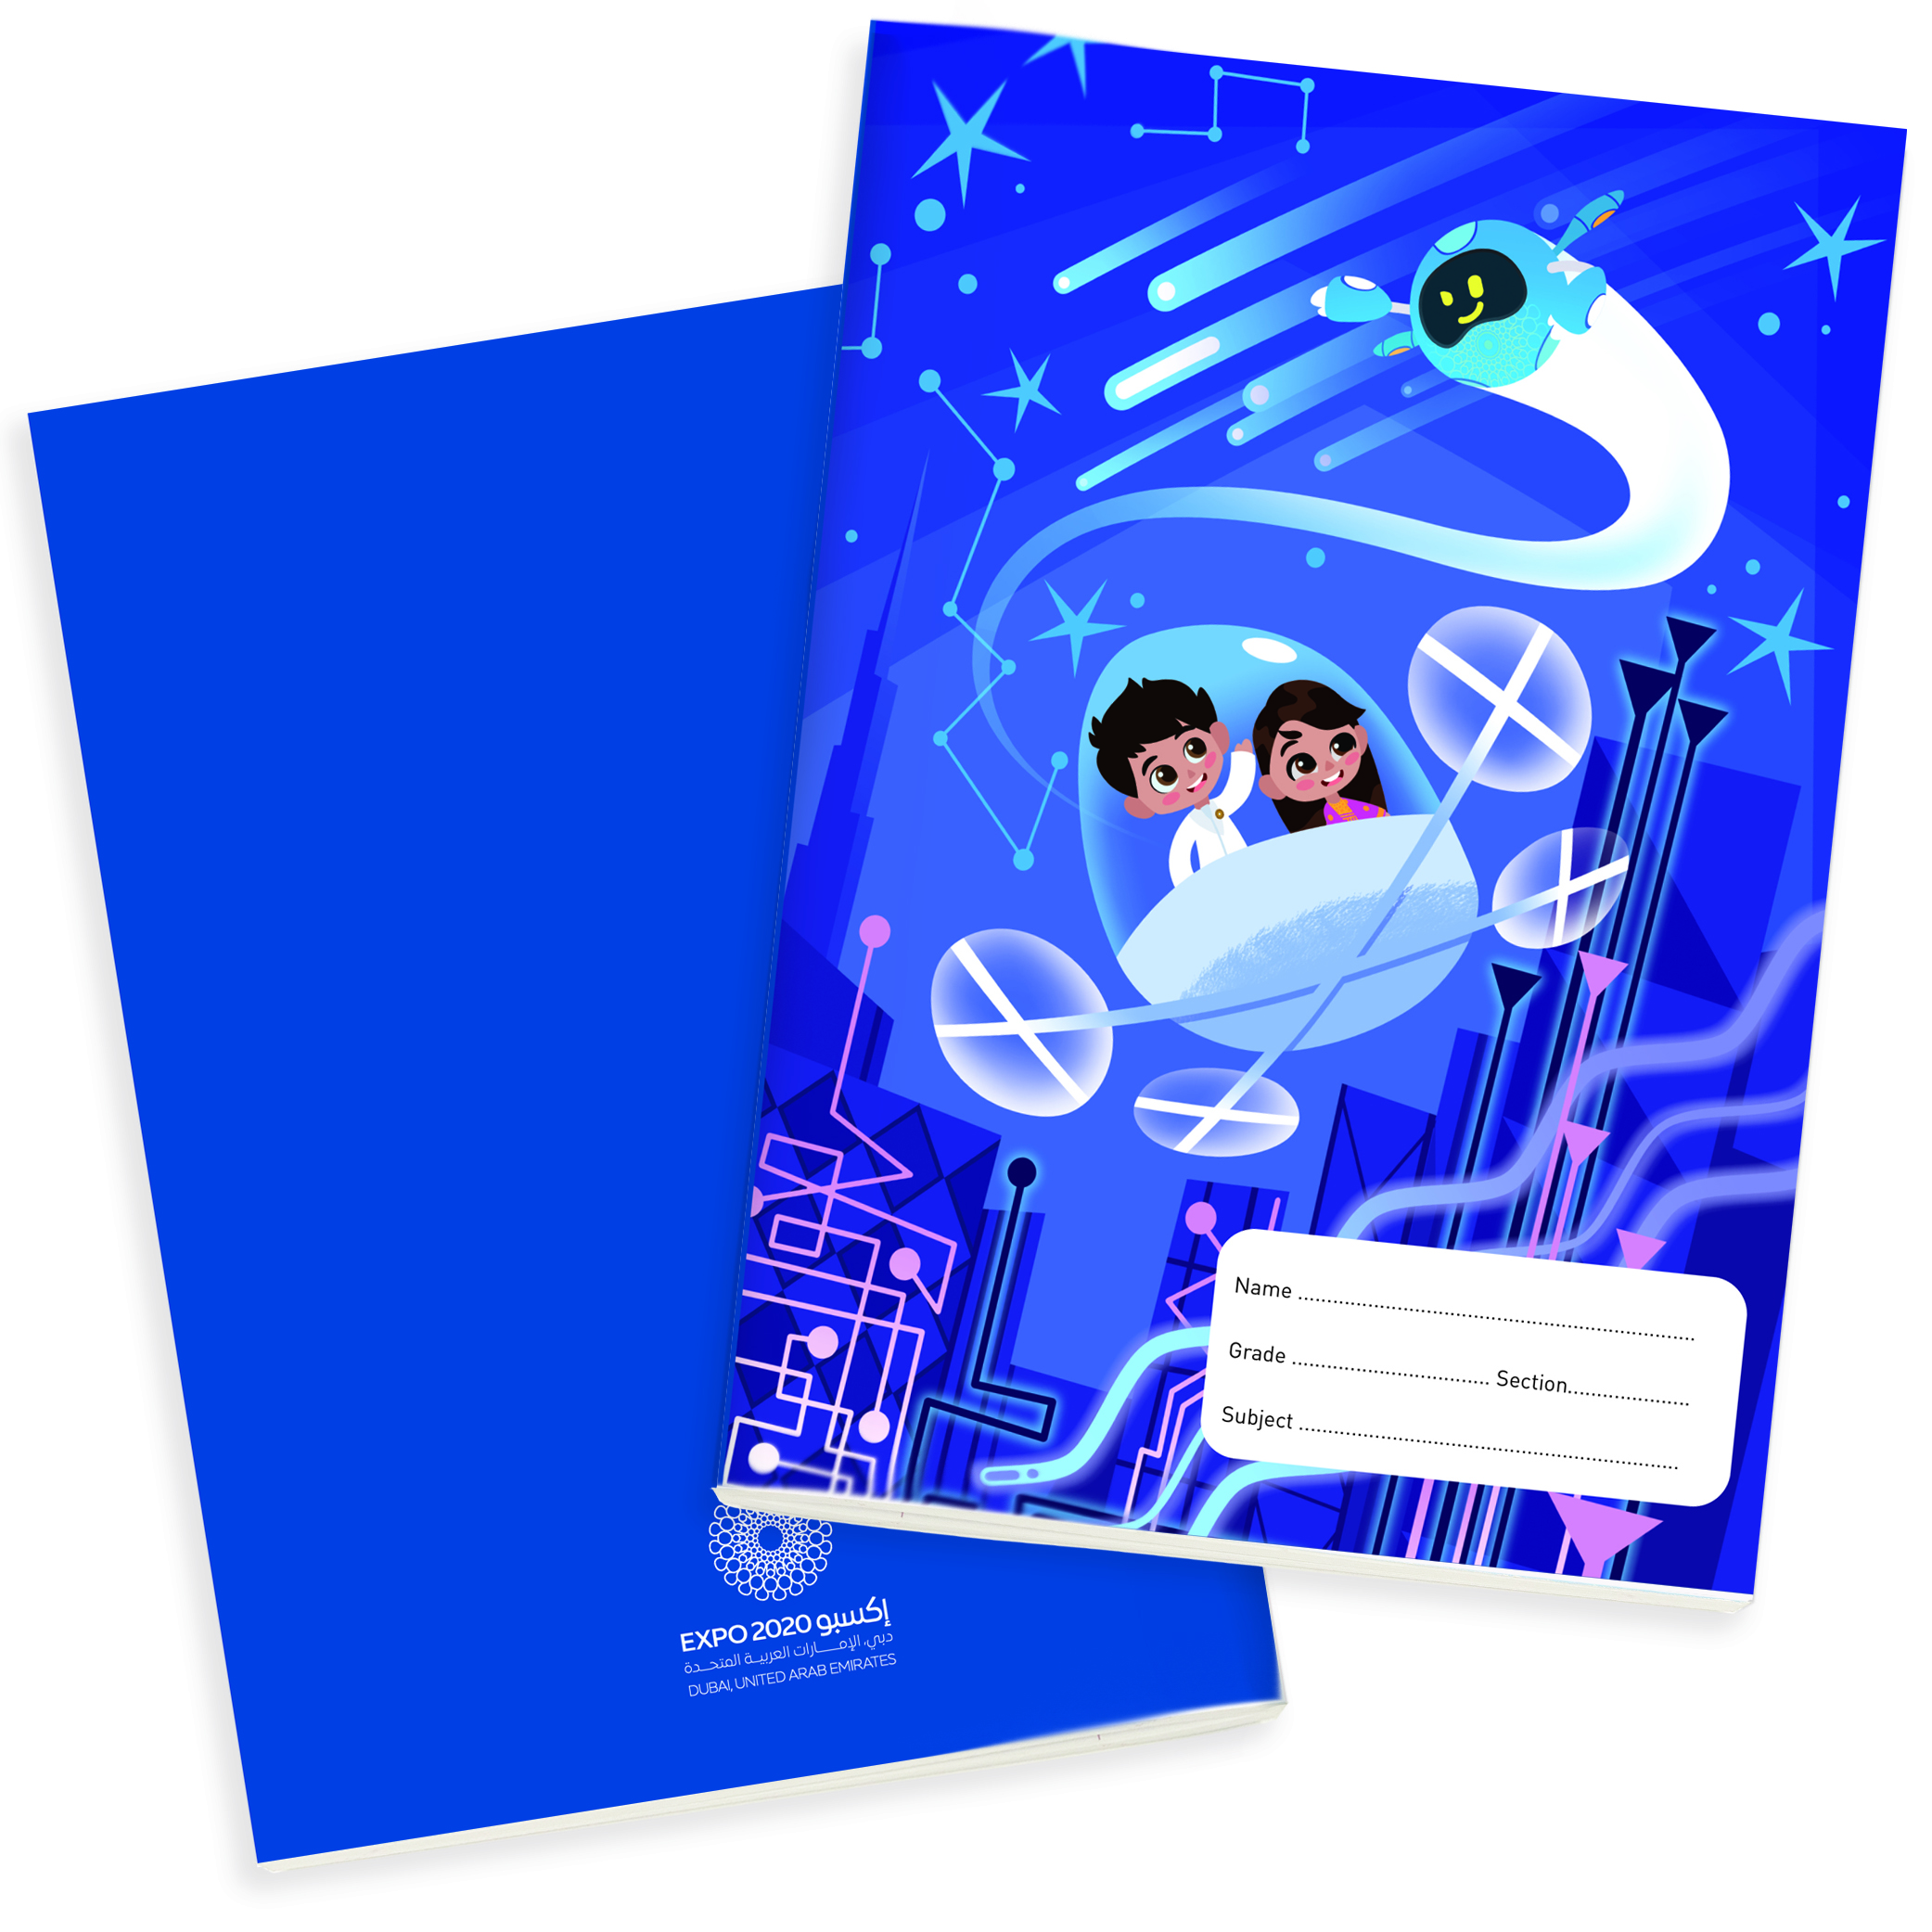 Expo 2020 Dubai Mascots Family B5 Exercise Books Pack of 4 - 160 Pages